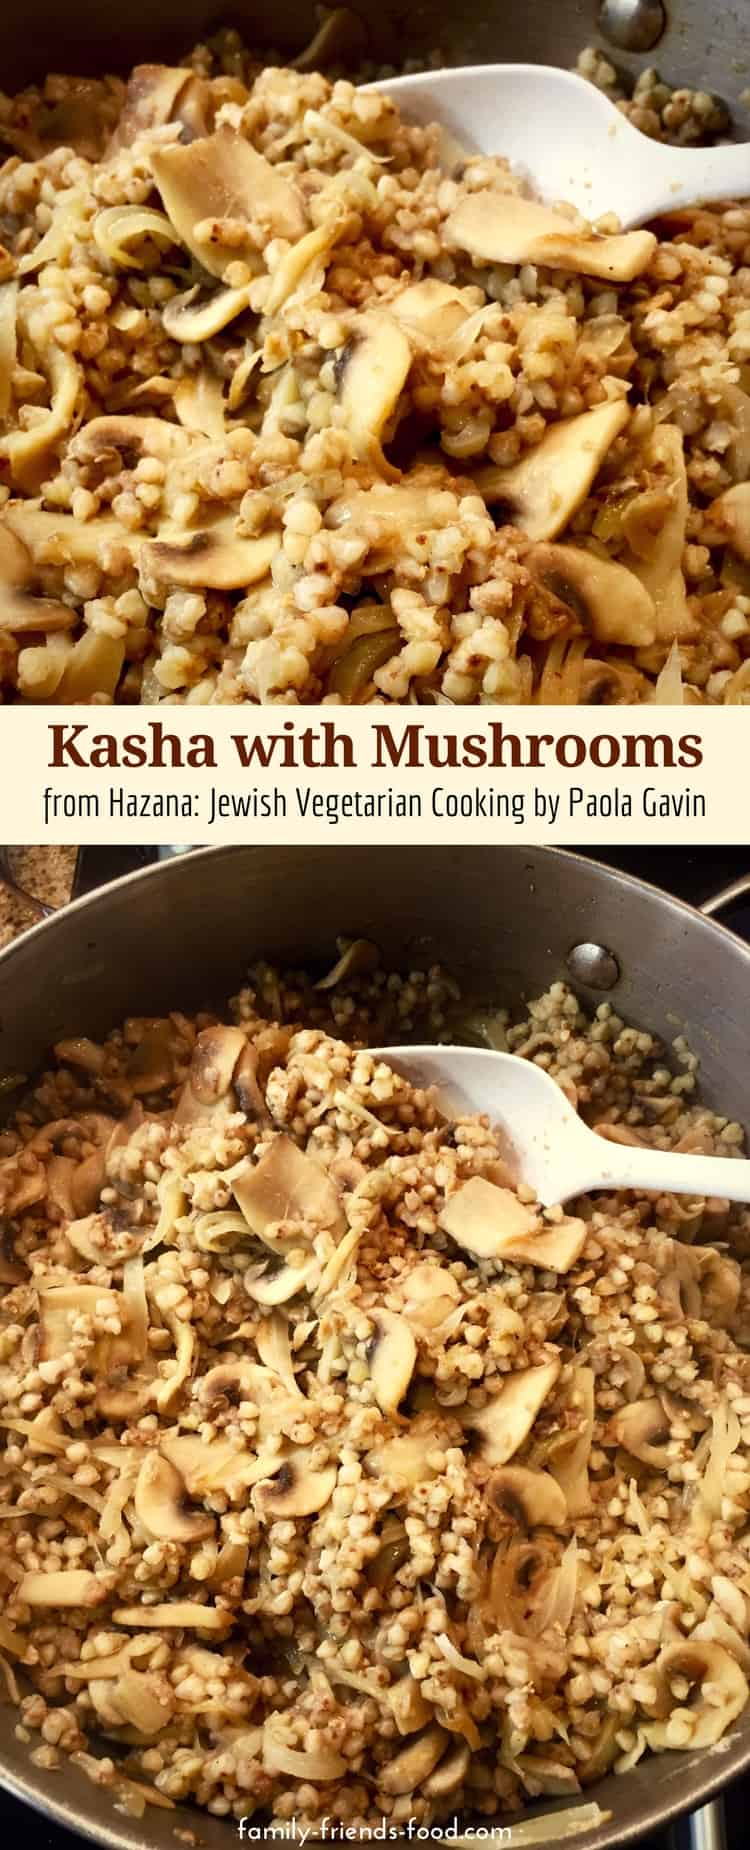 Nutty, buttery, savoury kasha with mushrooms recipe, taken from Paola Gavin's book Hazana: Jewish Vegetarian Cooking. A delicious dish plus a book review!